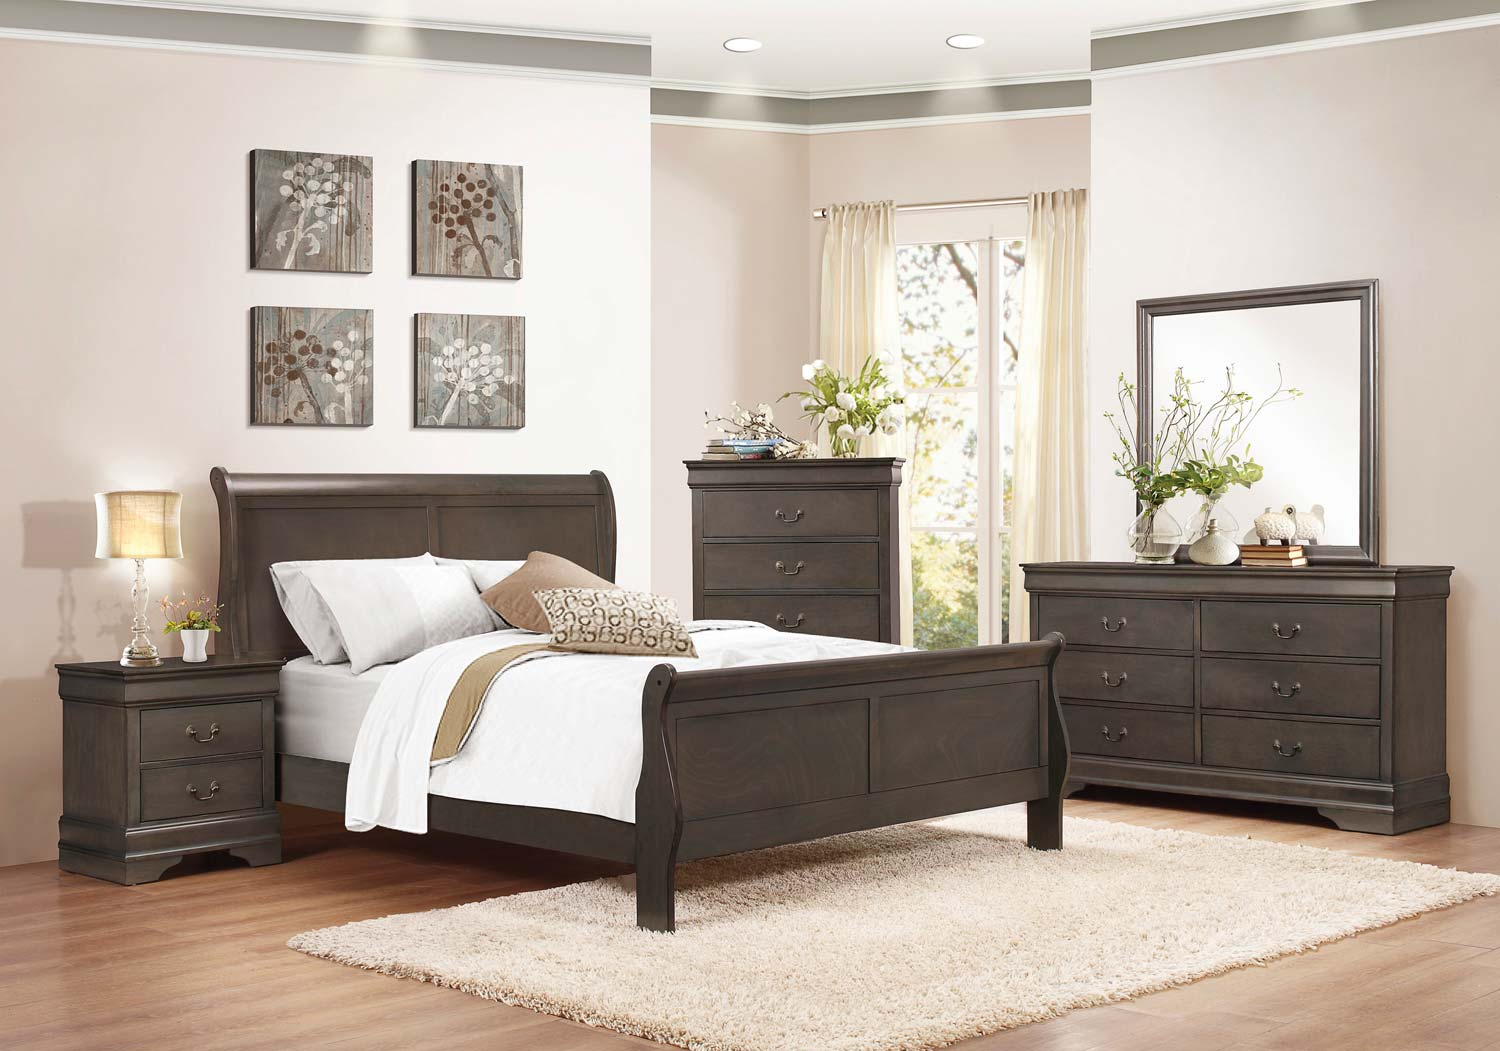 7Pc Queen Bedroom $799 - Available in White, Gray, Black and Cherry